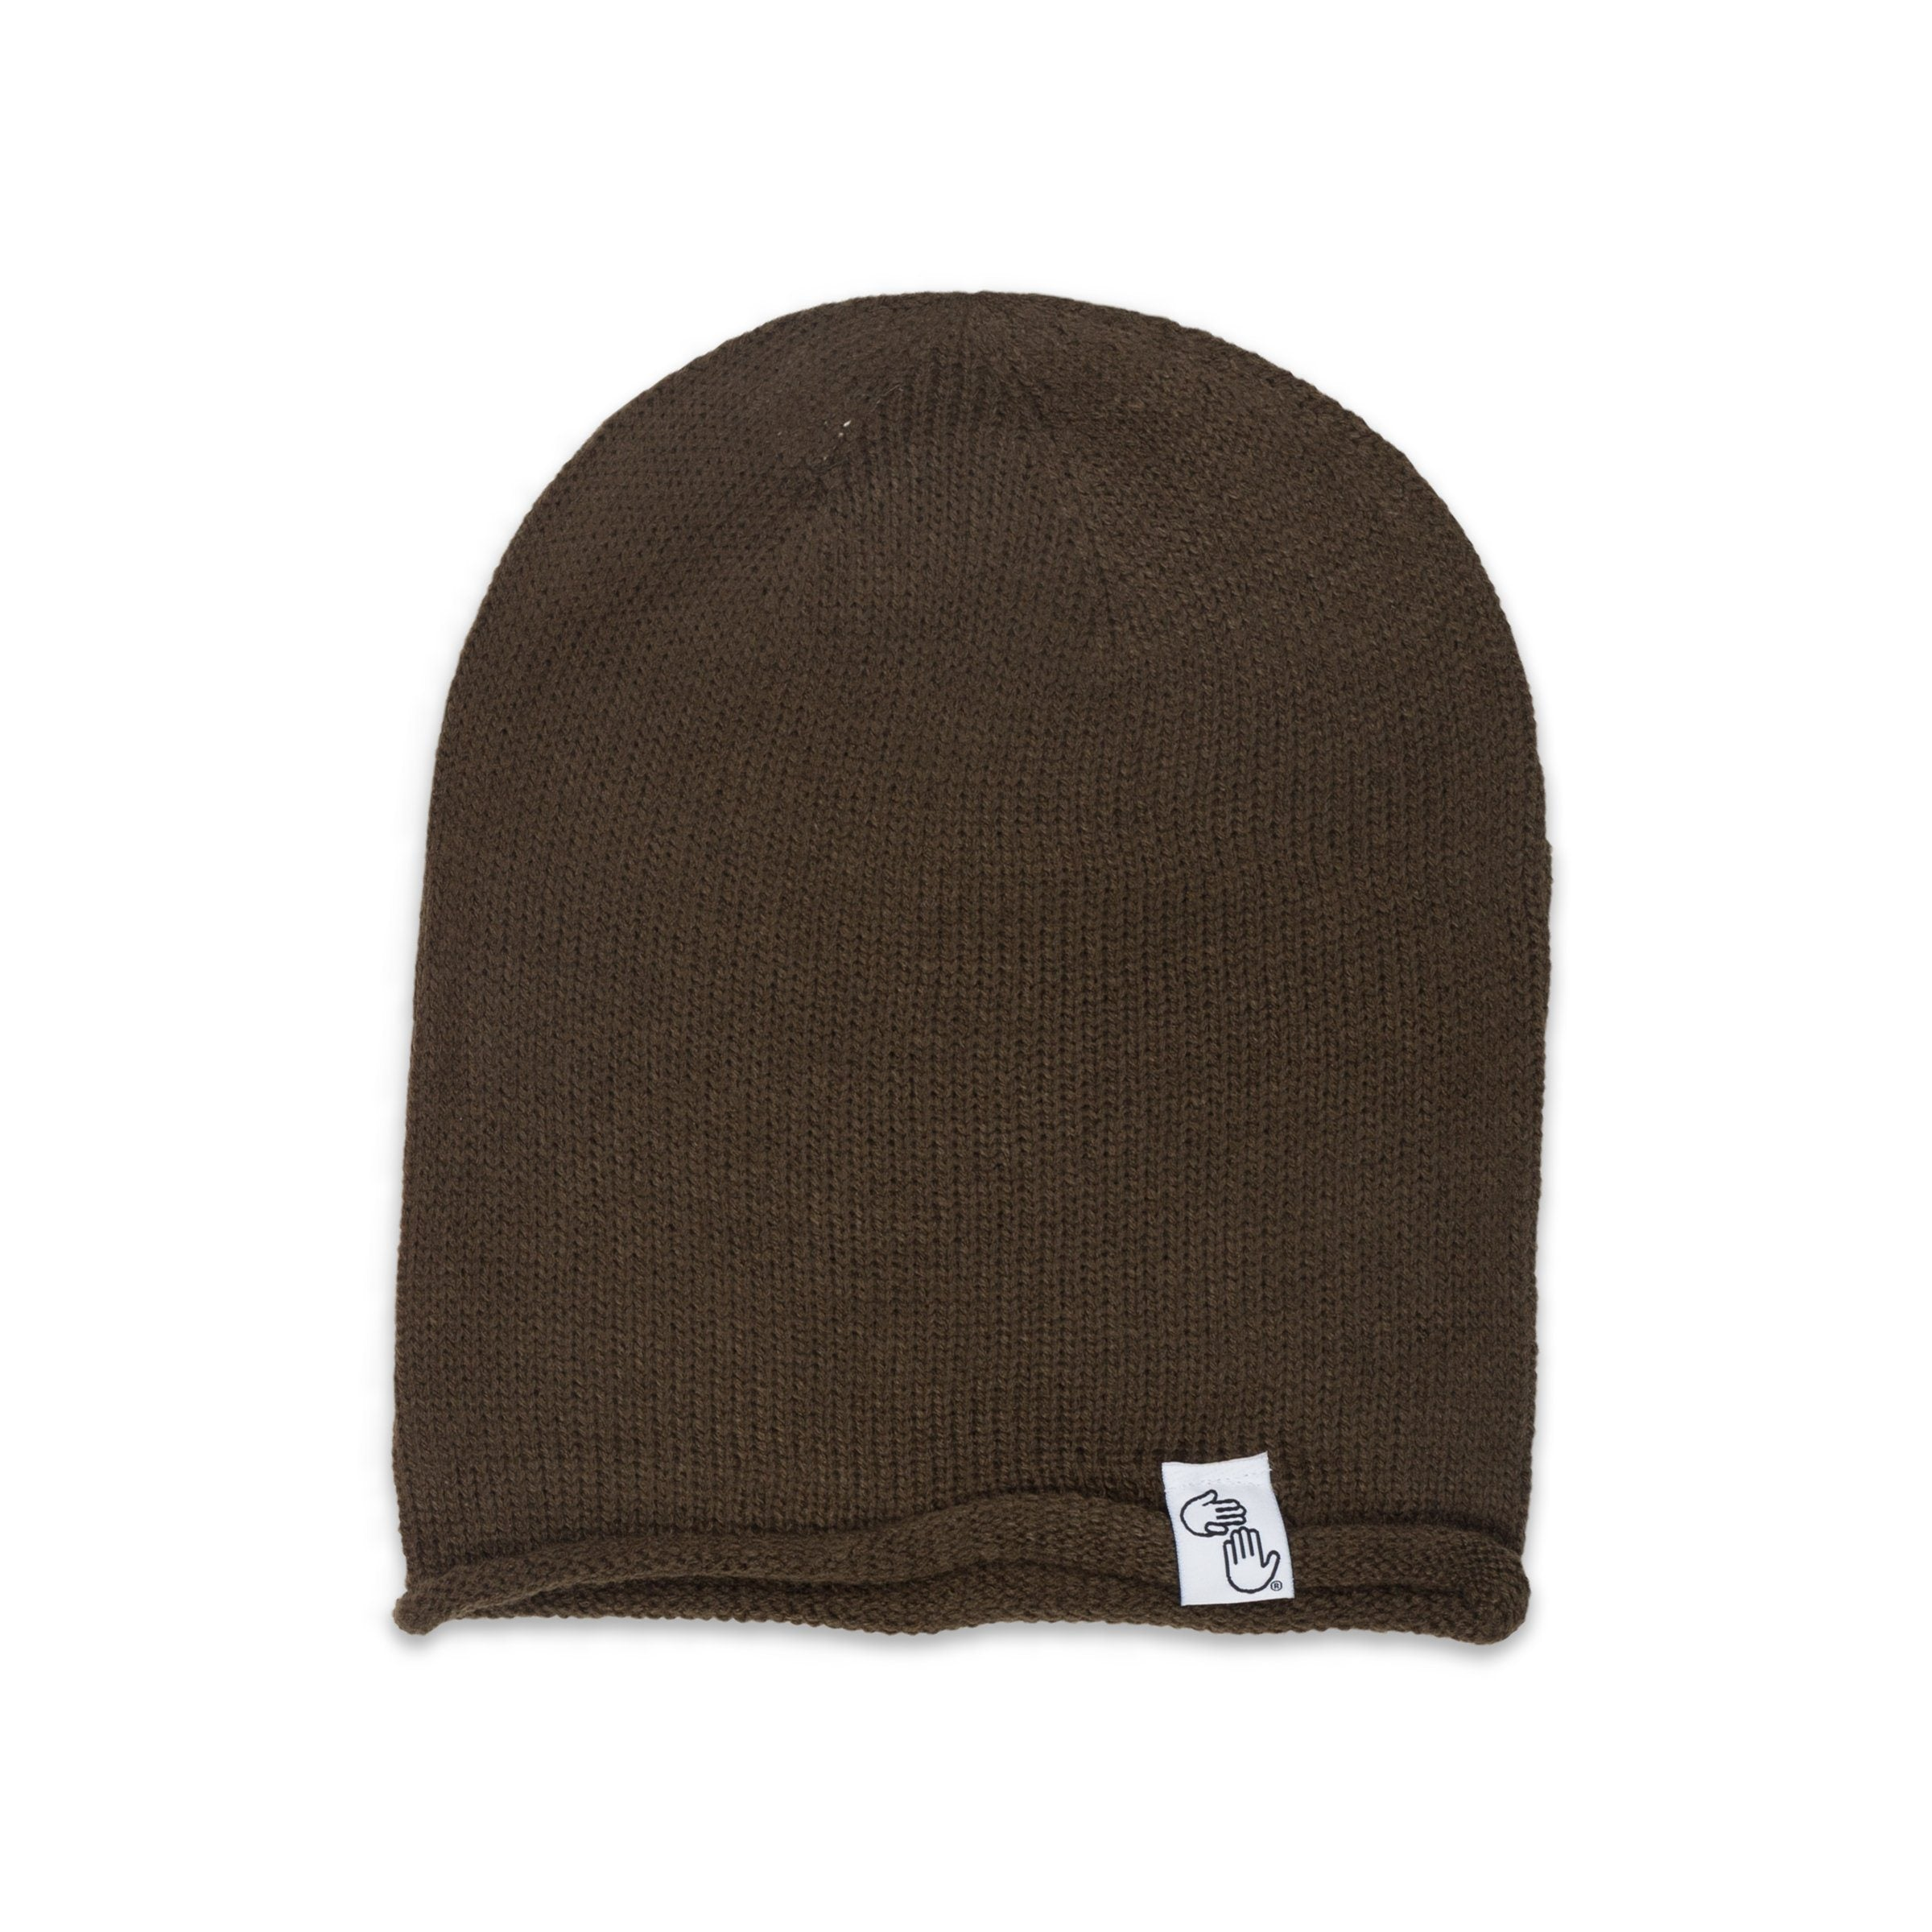 Oversized Knit Beanie (Olive) – High Five Threads d9c8b7fca22